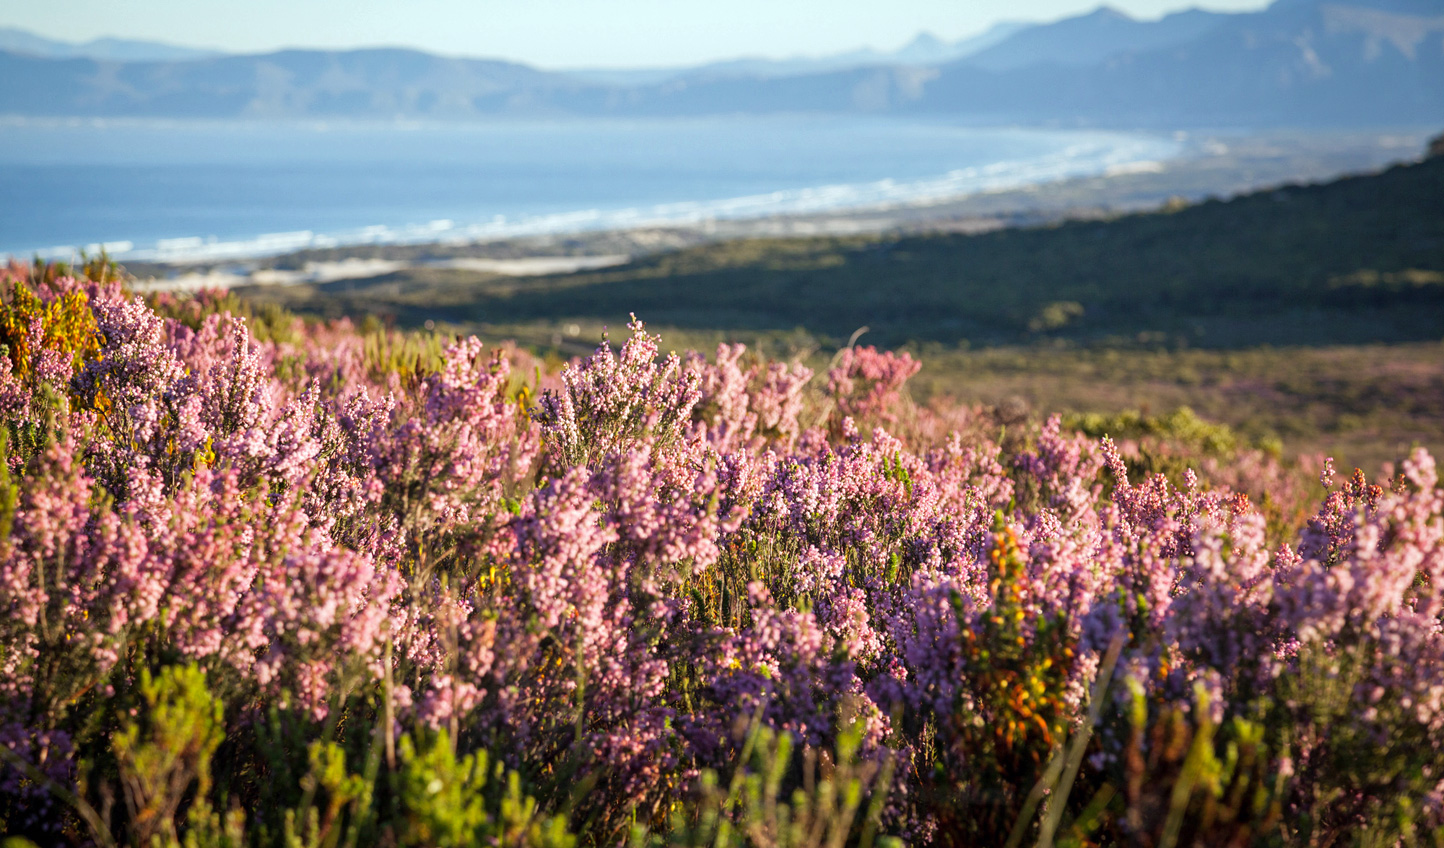 Switch fauna for flora on a Grootbos safari